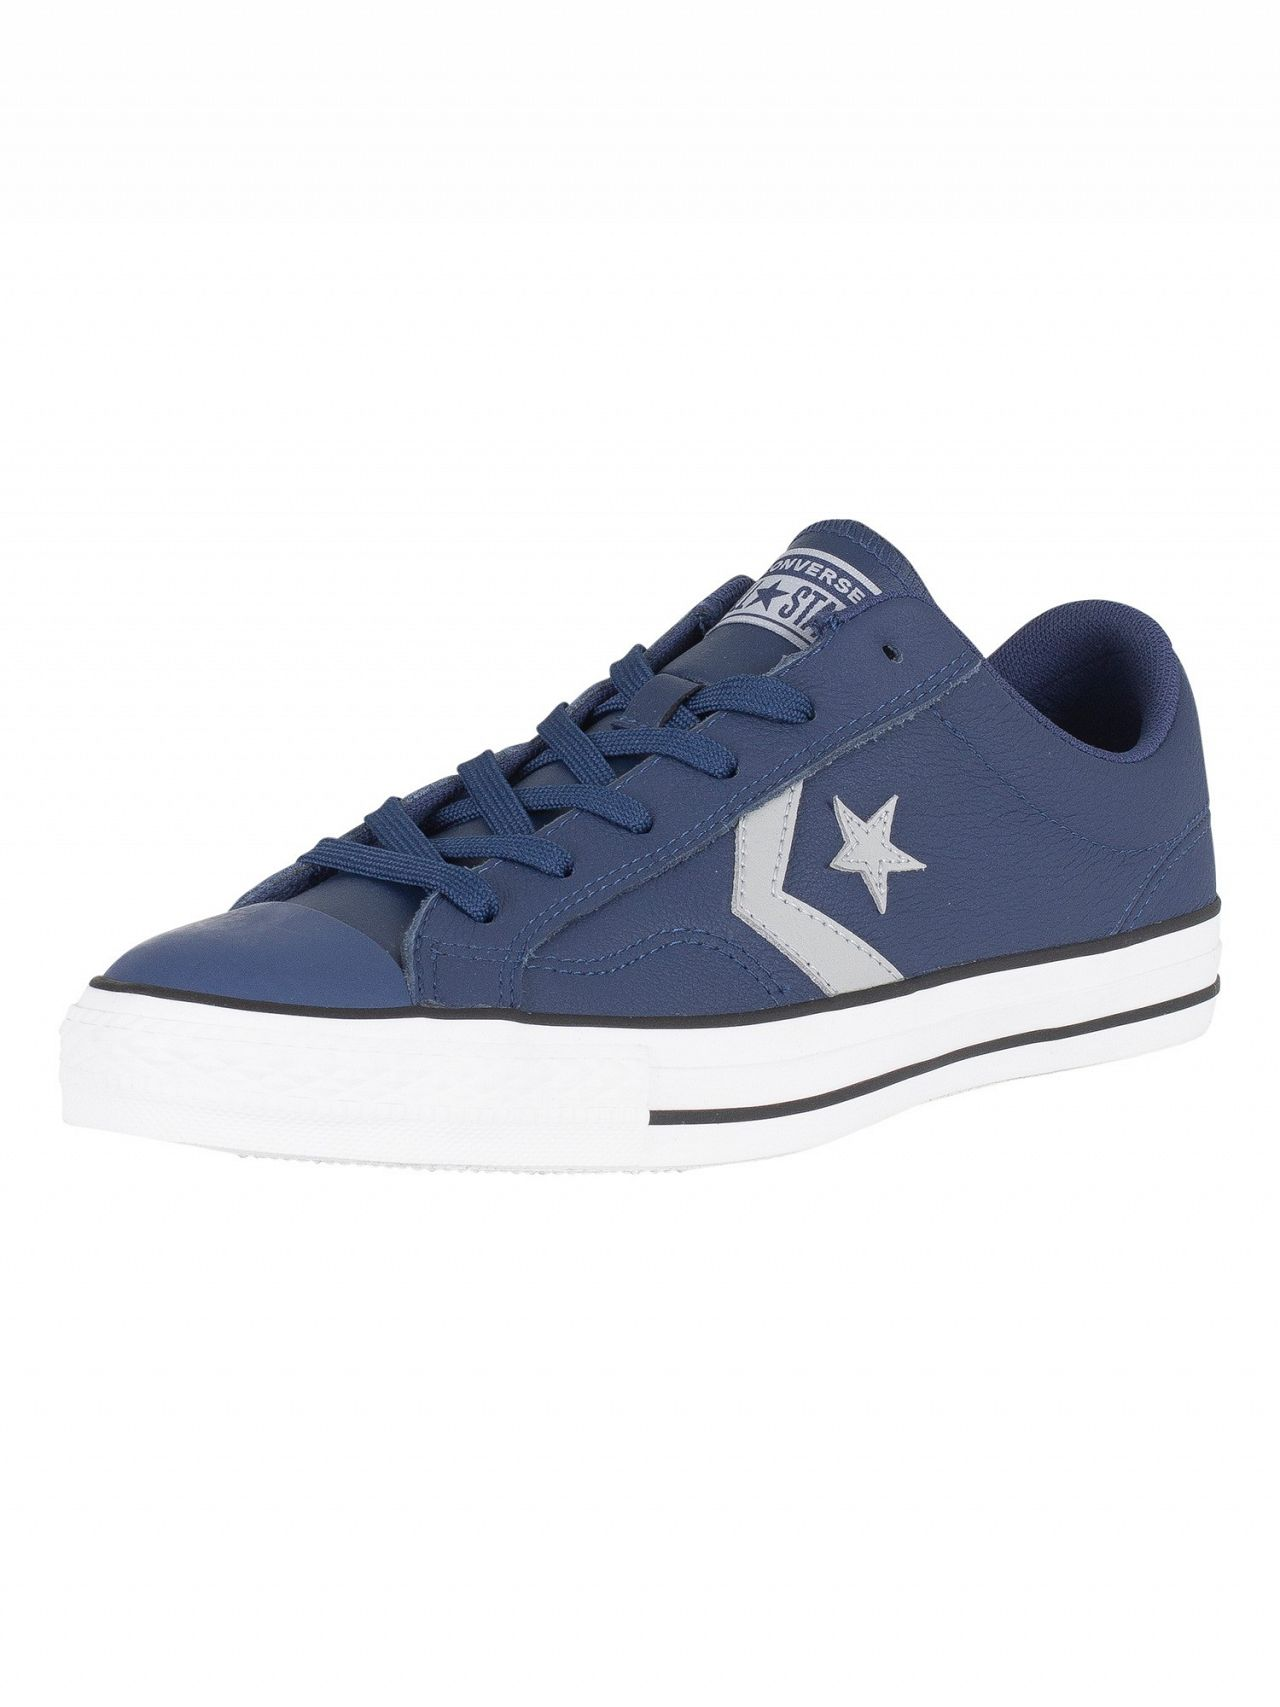 Converse Navy  Wolf Grey Star Player Ox Leather Trainers  b3832d5dc